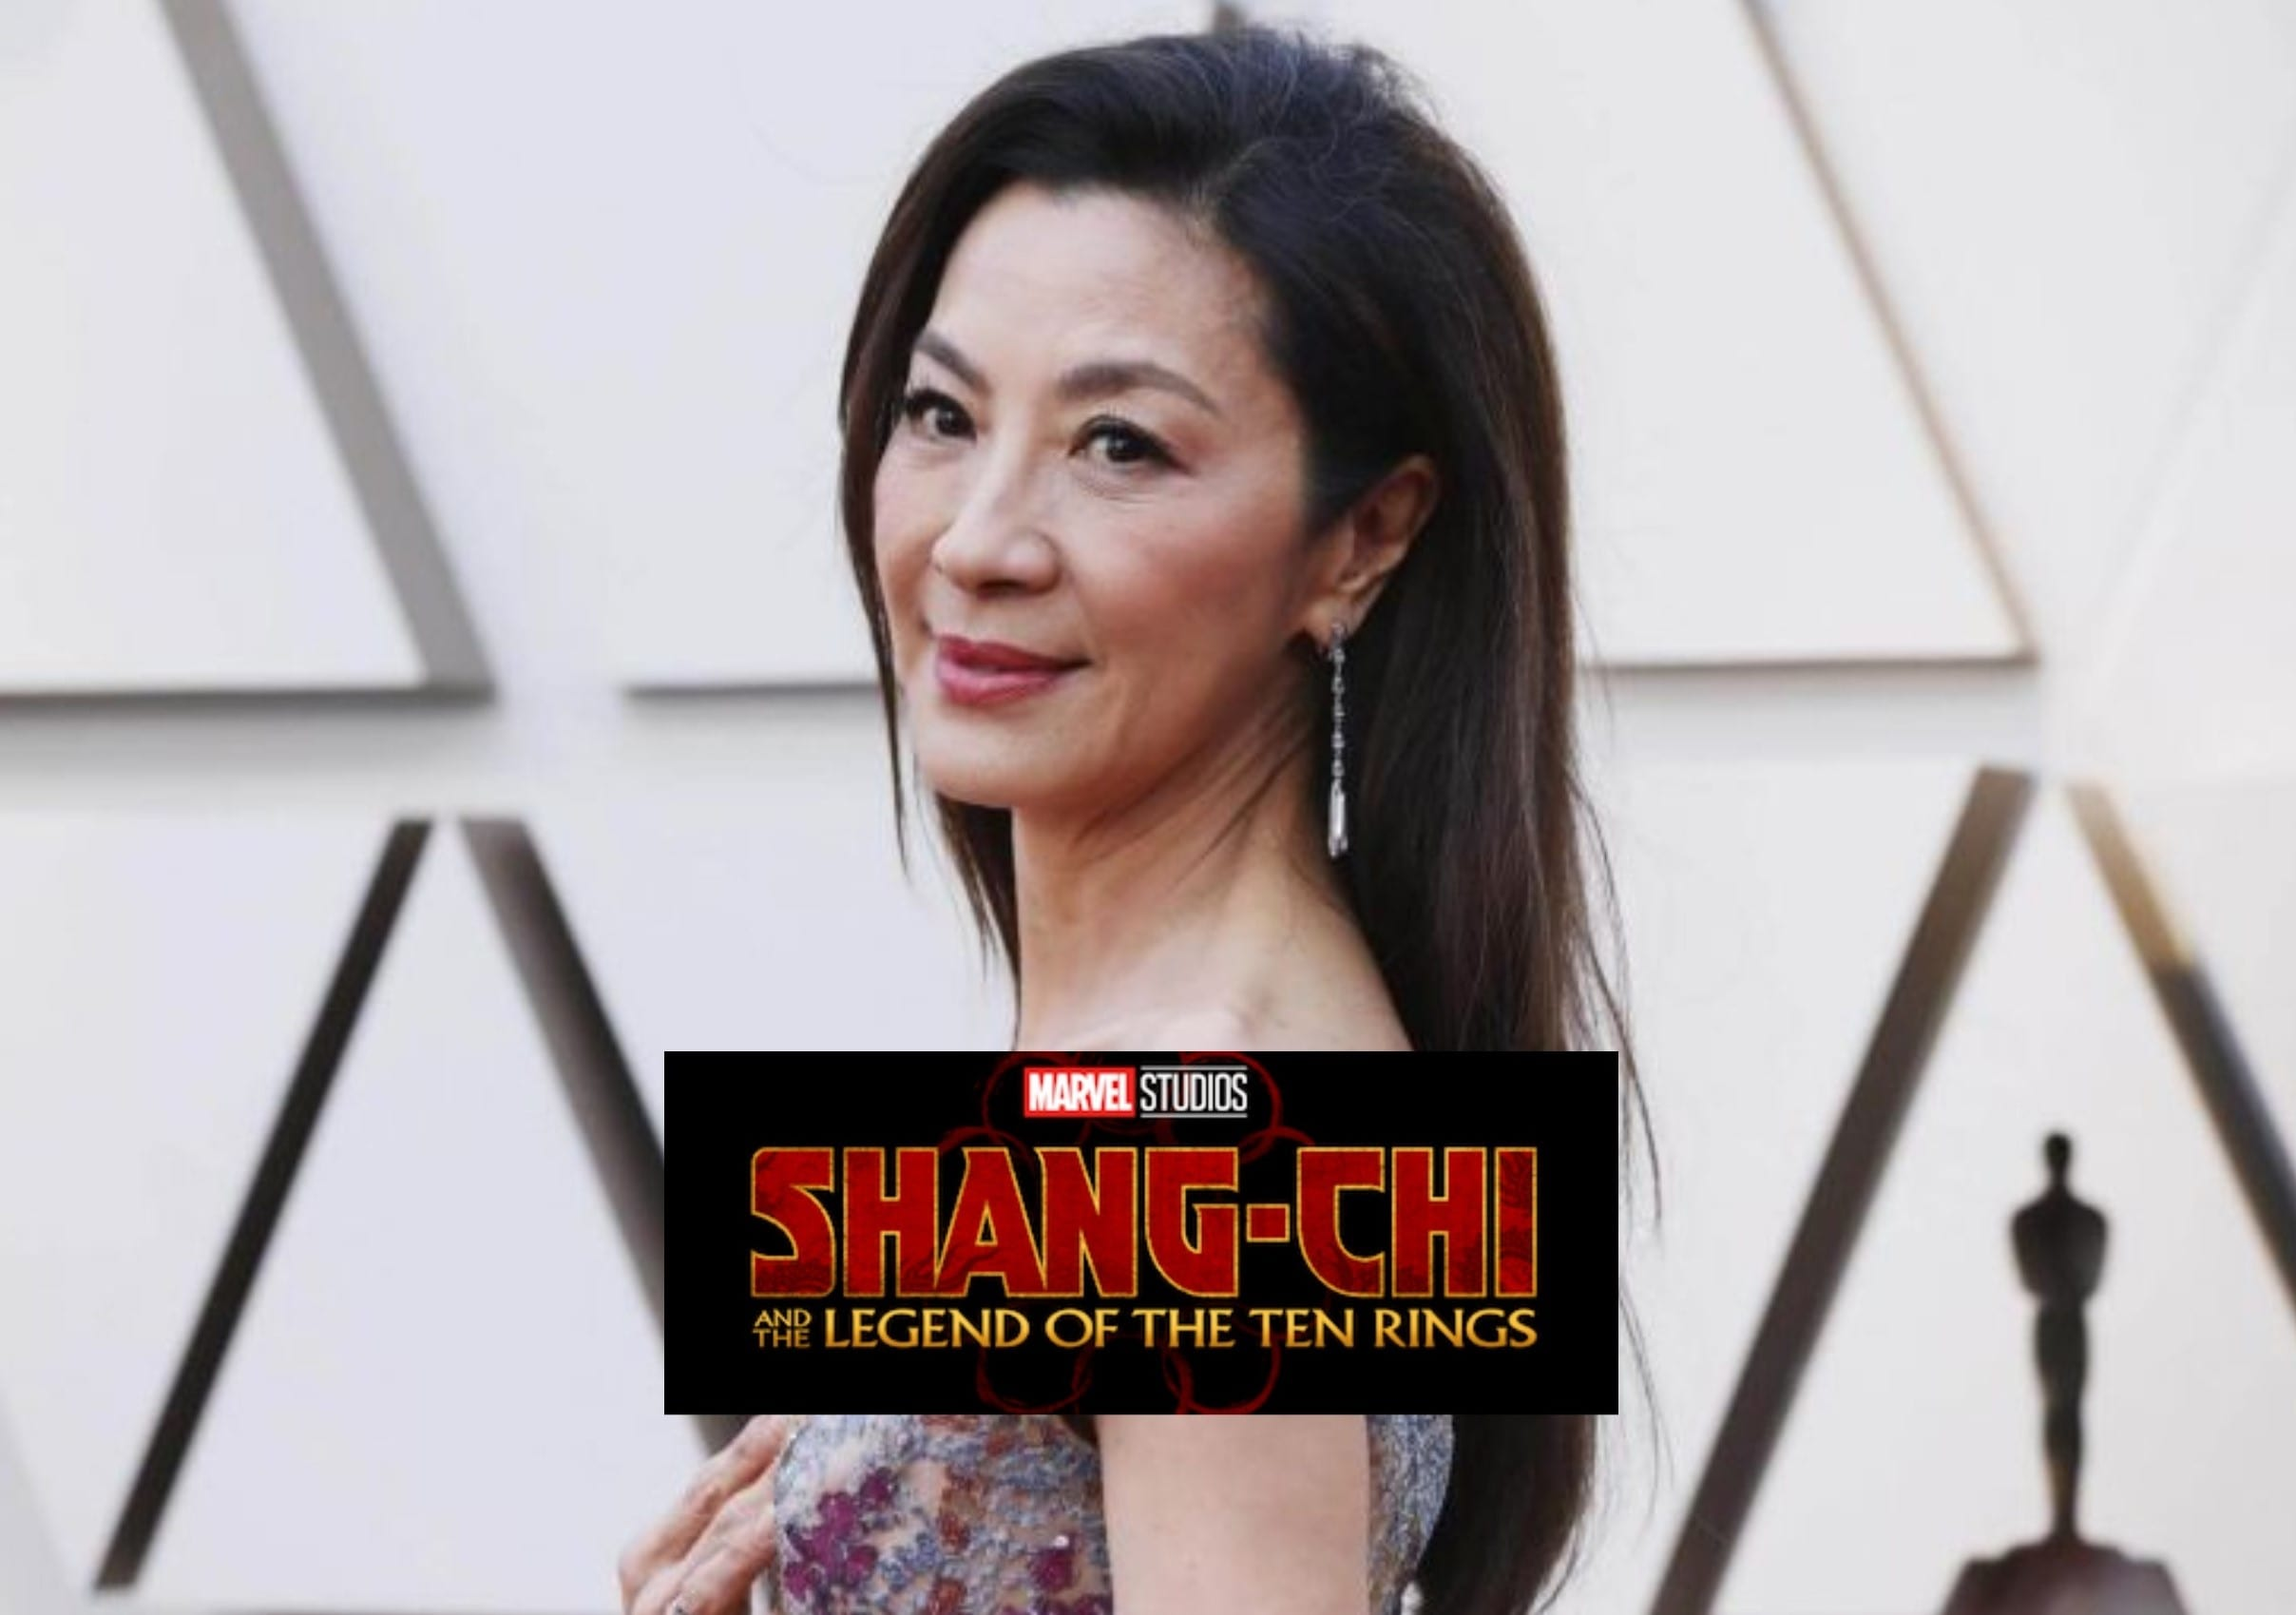 Did Michelle Yeoh just confirm she's in Shang-Chi?